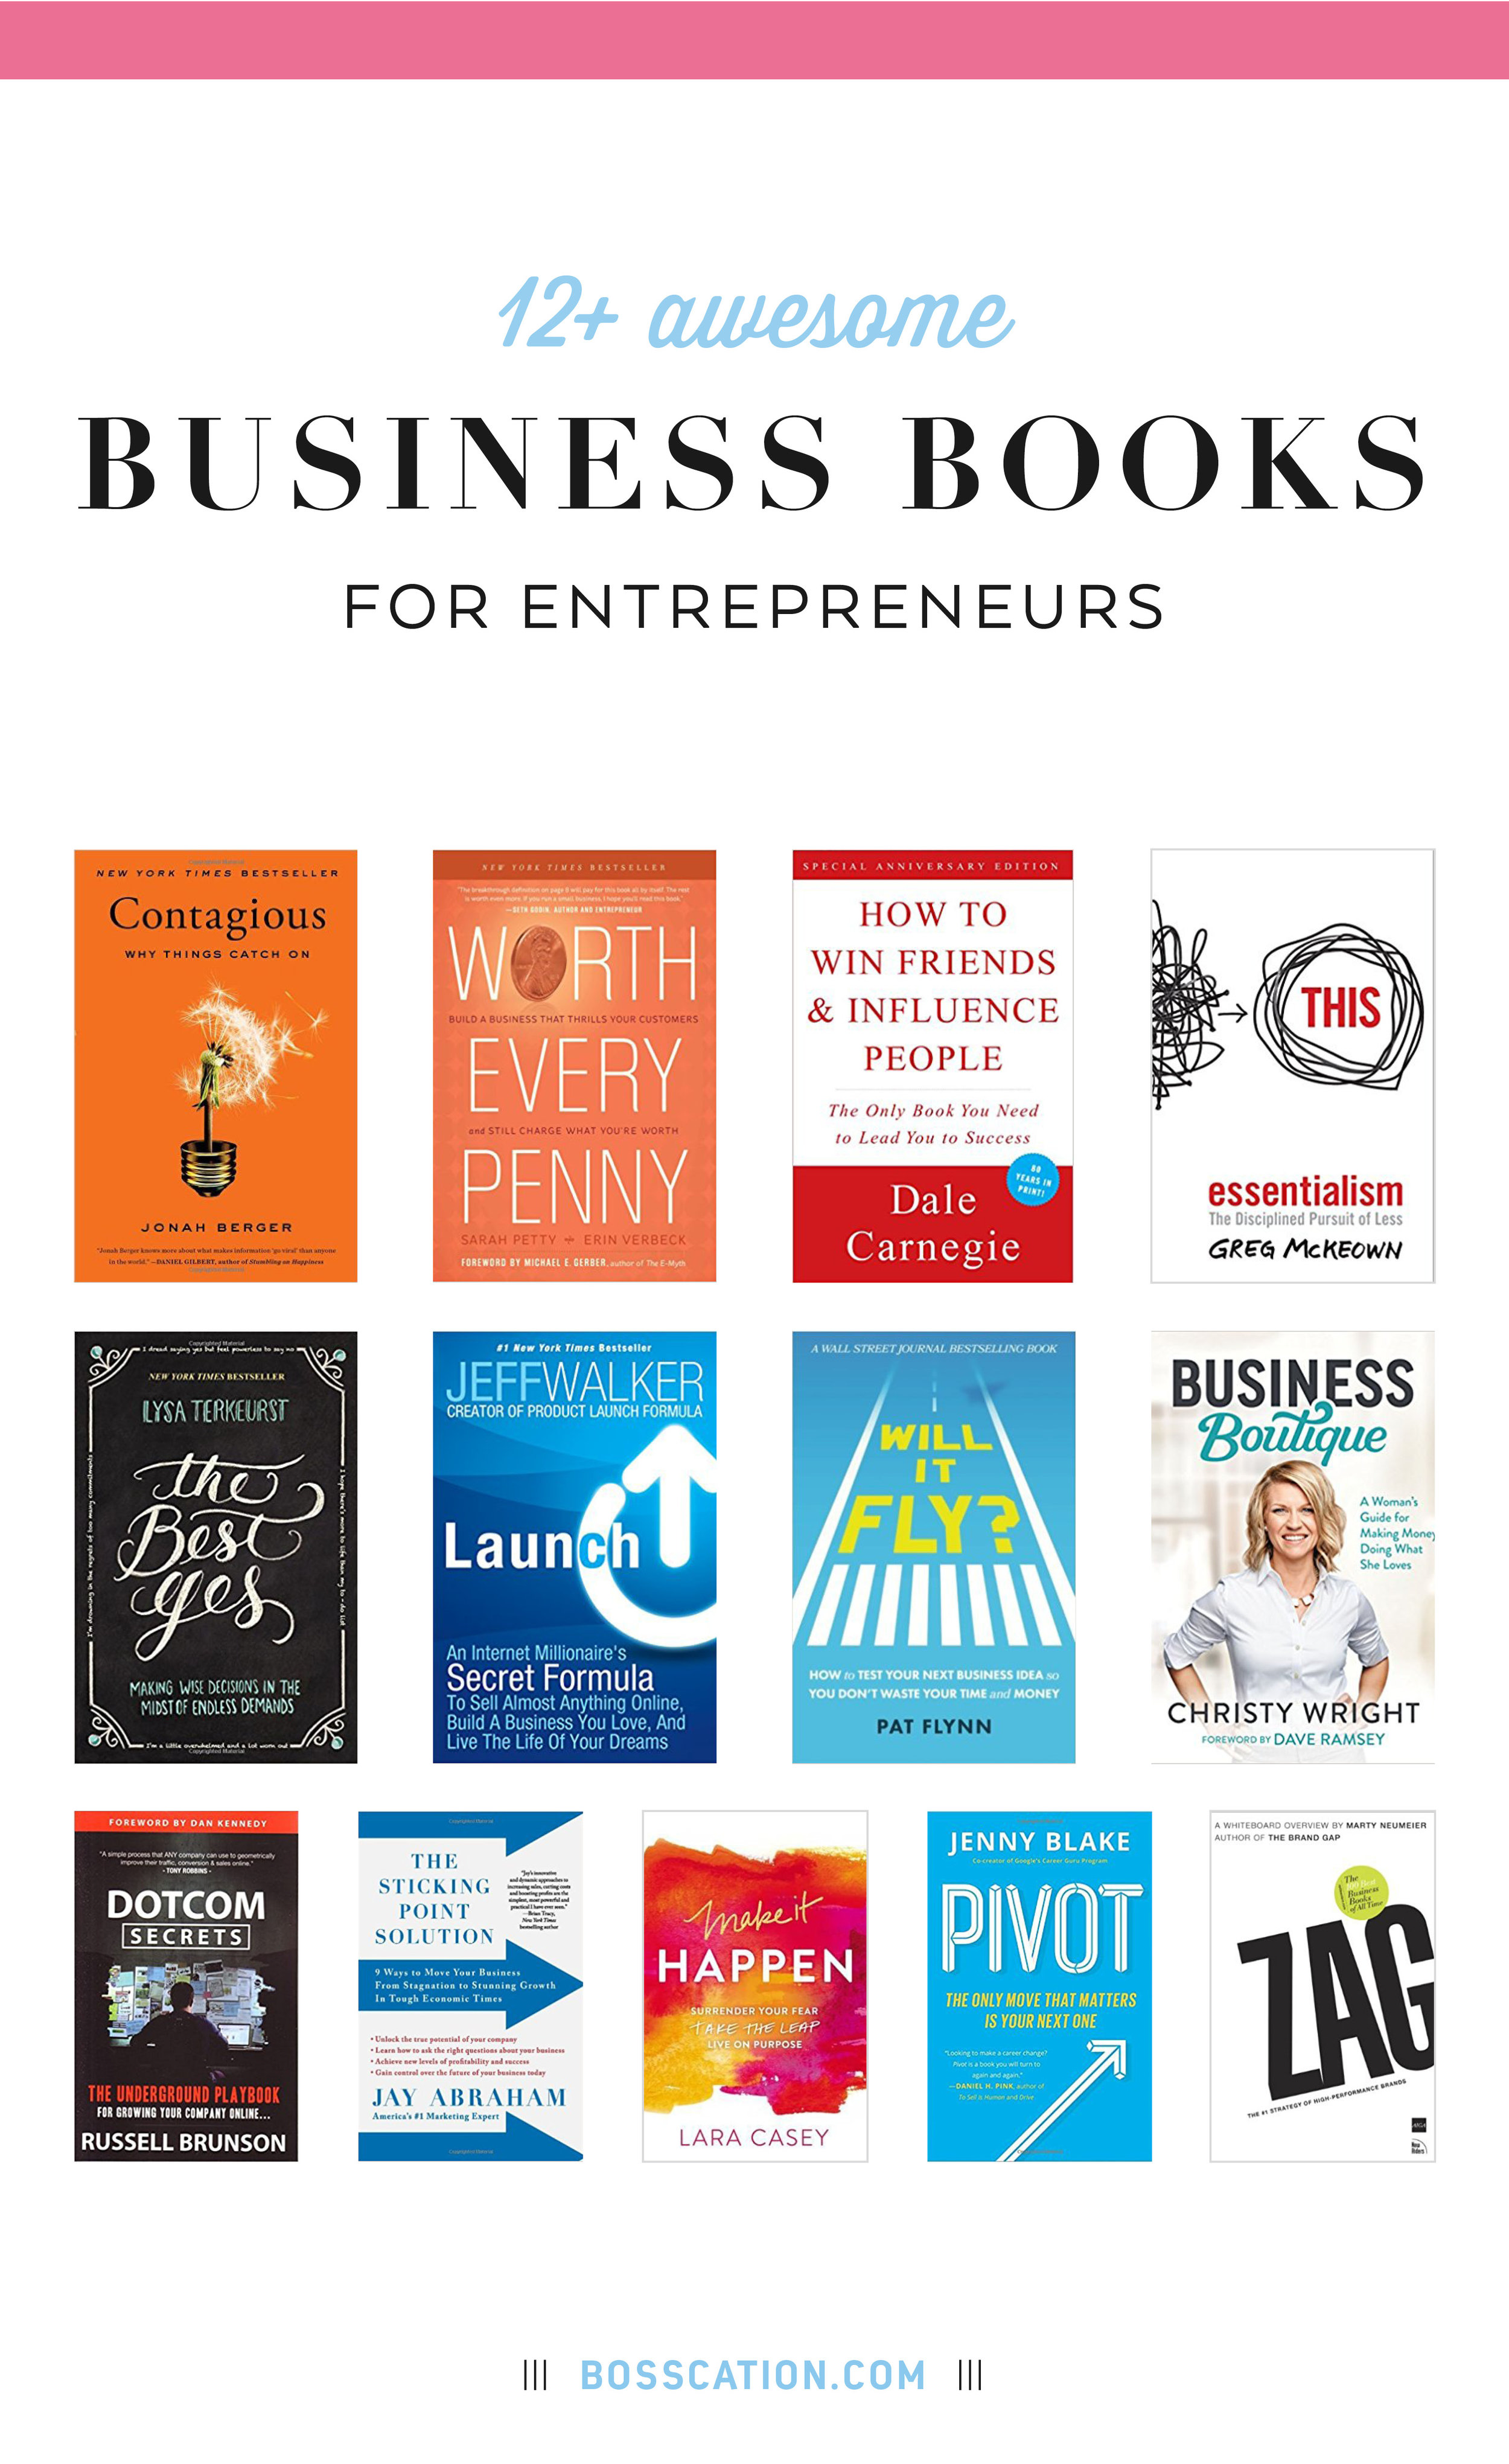 Looking for some good books for entrepreneurs and small businesses? Here are some of my favorite biz books. Find books on pricing, launching, testing your ideas, learning to set boundaries and say no, starting a new business and growing your list via funnels. Would make for a great Christmas wish list or gifts.